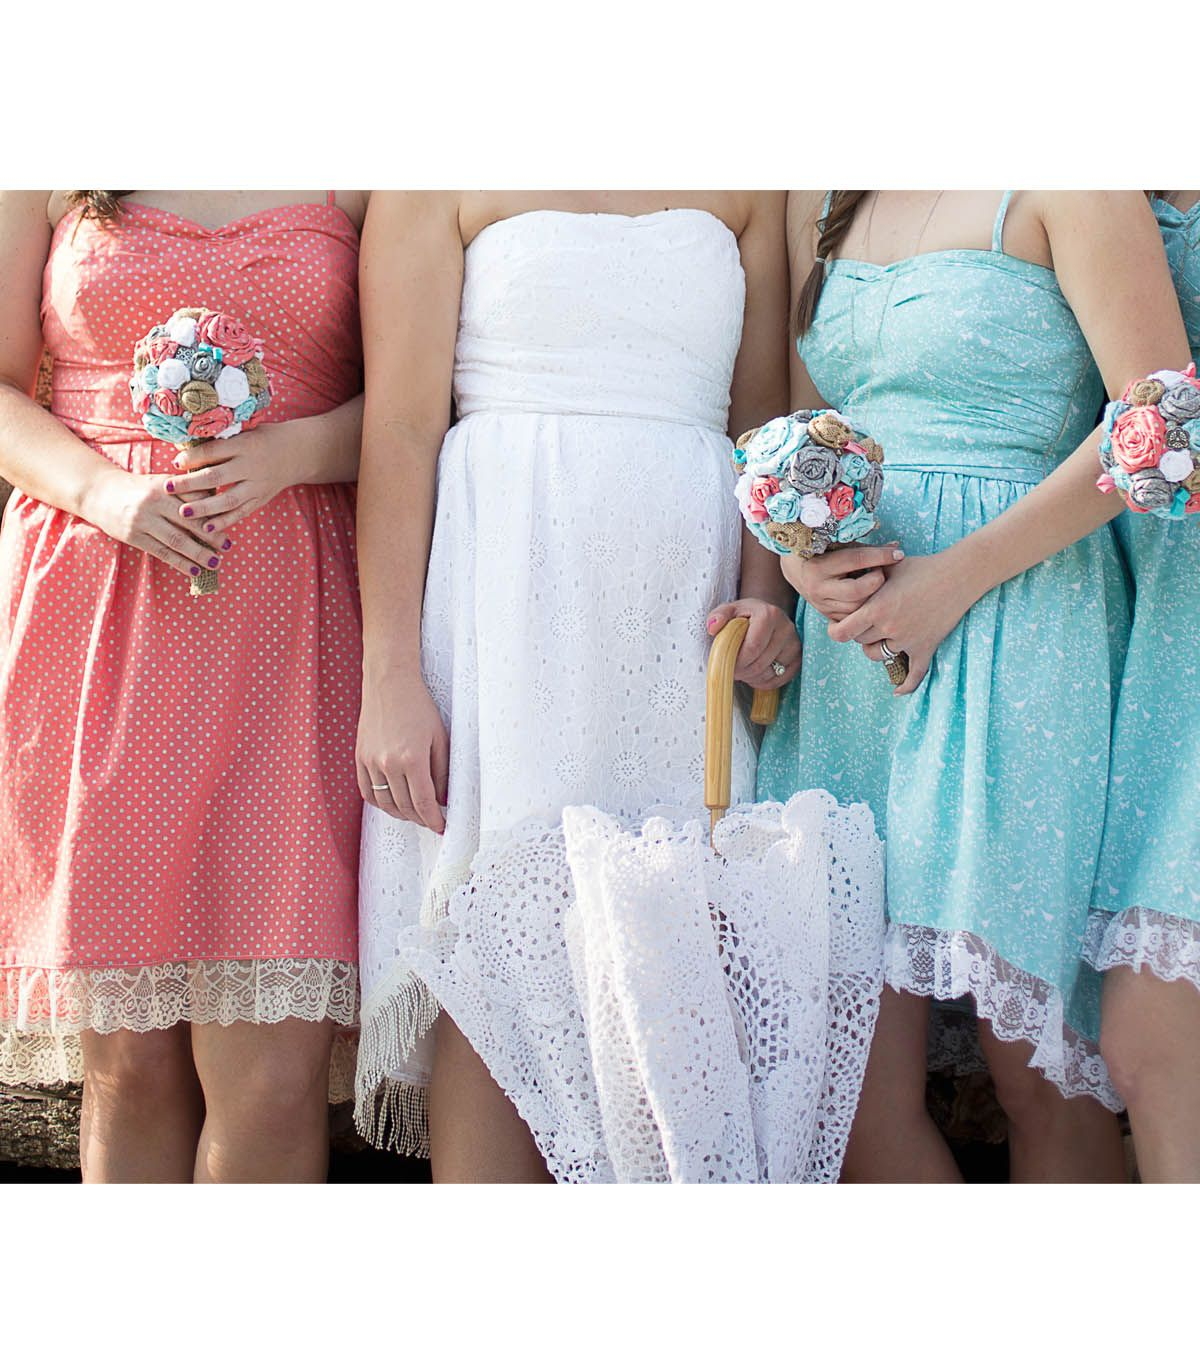 Diy Wedding Gowns: Country Chic Bridesmaid's Dresses And Bride's Dress